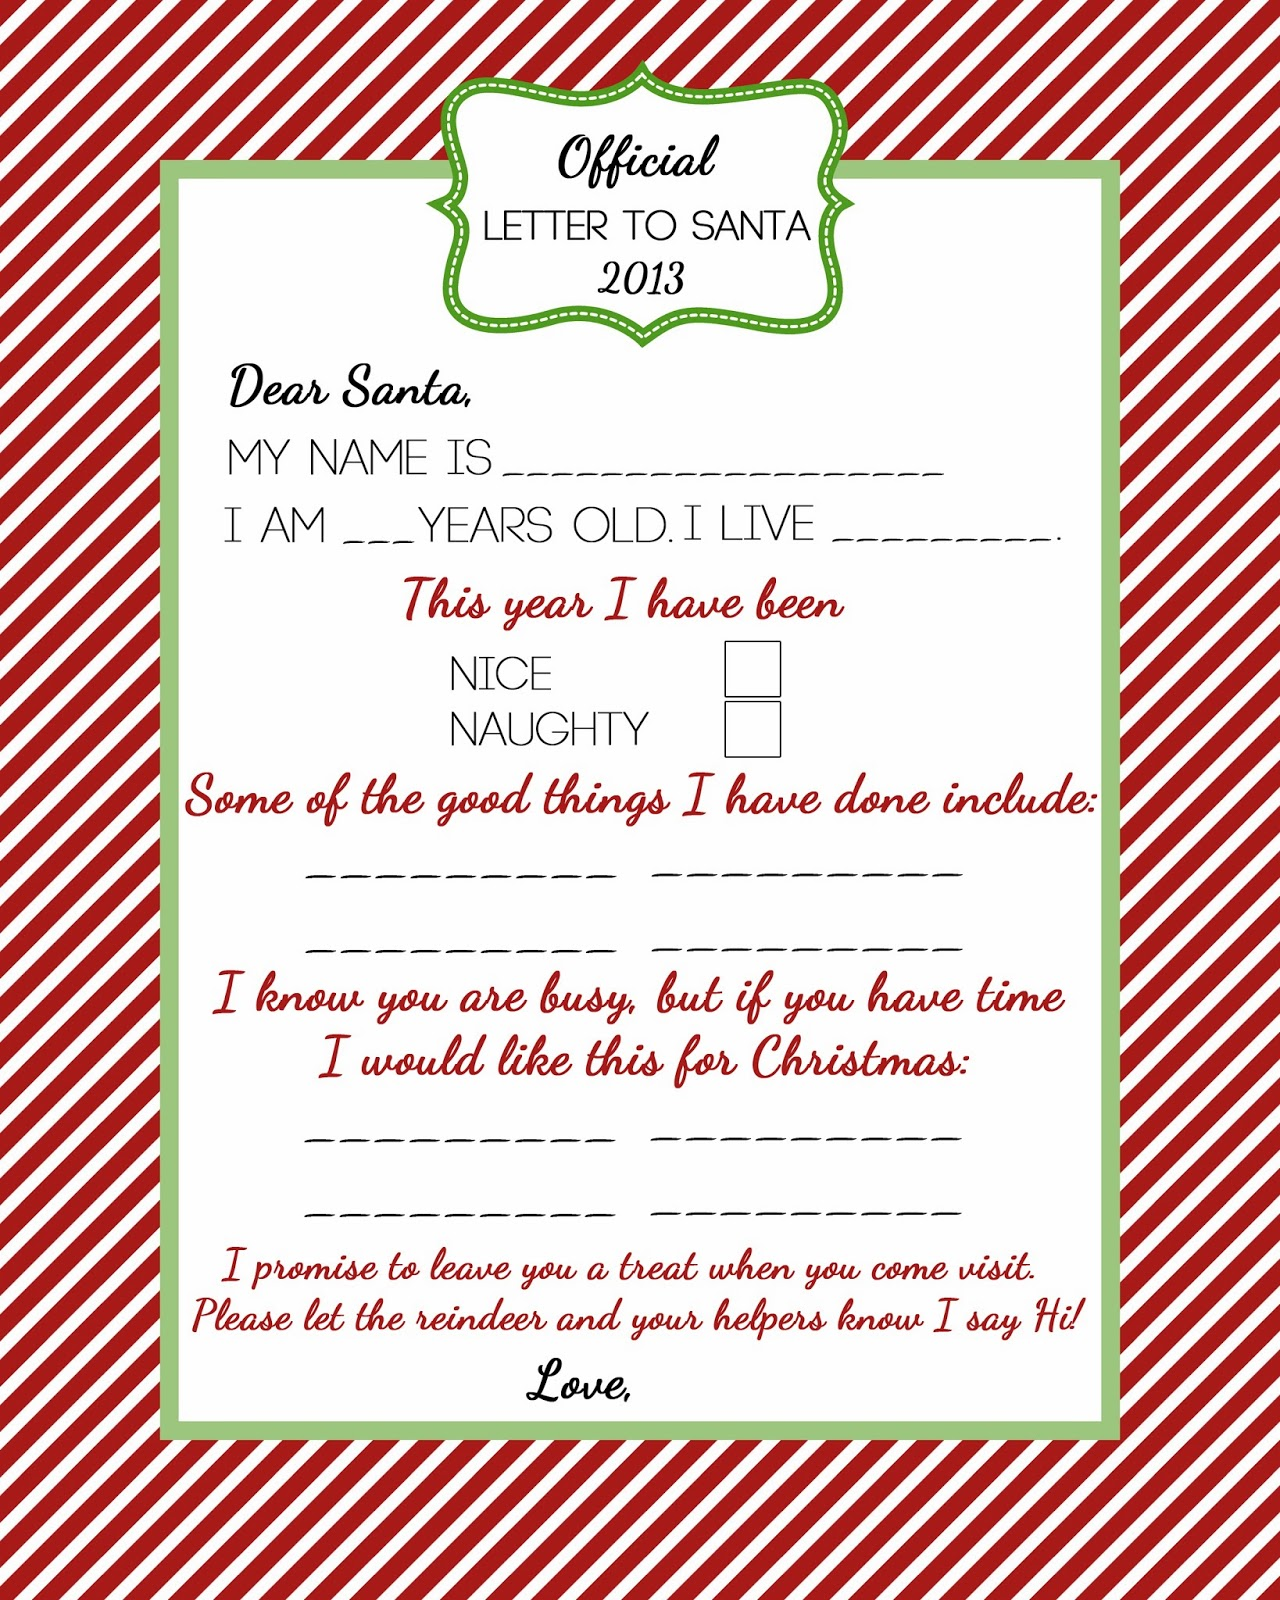 Free printable naughty or nice a delicate gift next week ill share a downloadable link to my coordinating santas official nice list certificate here is a peek xflitez Gallery